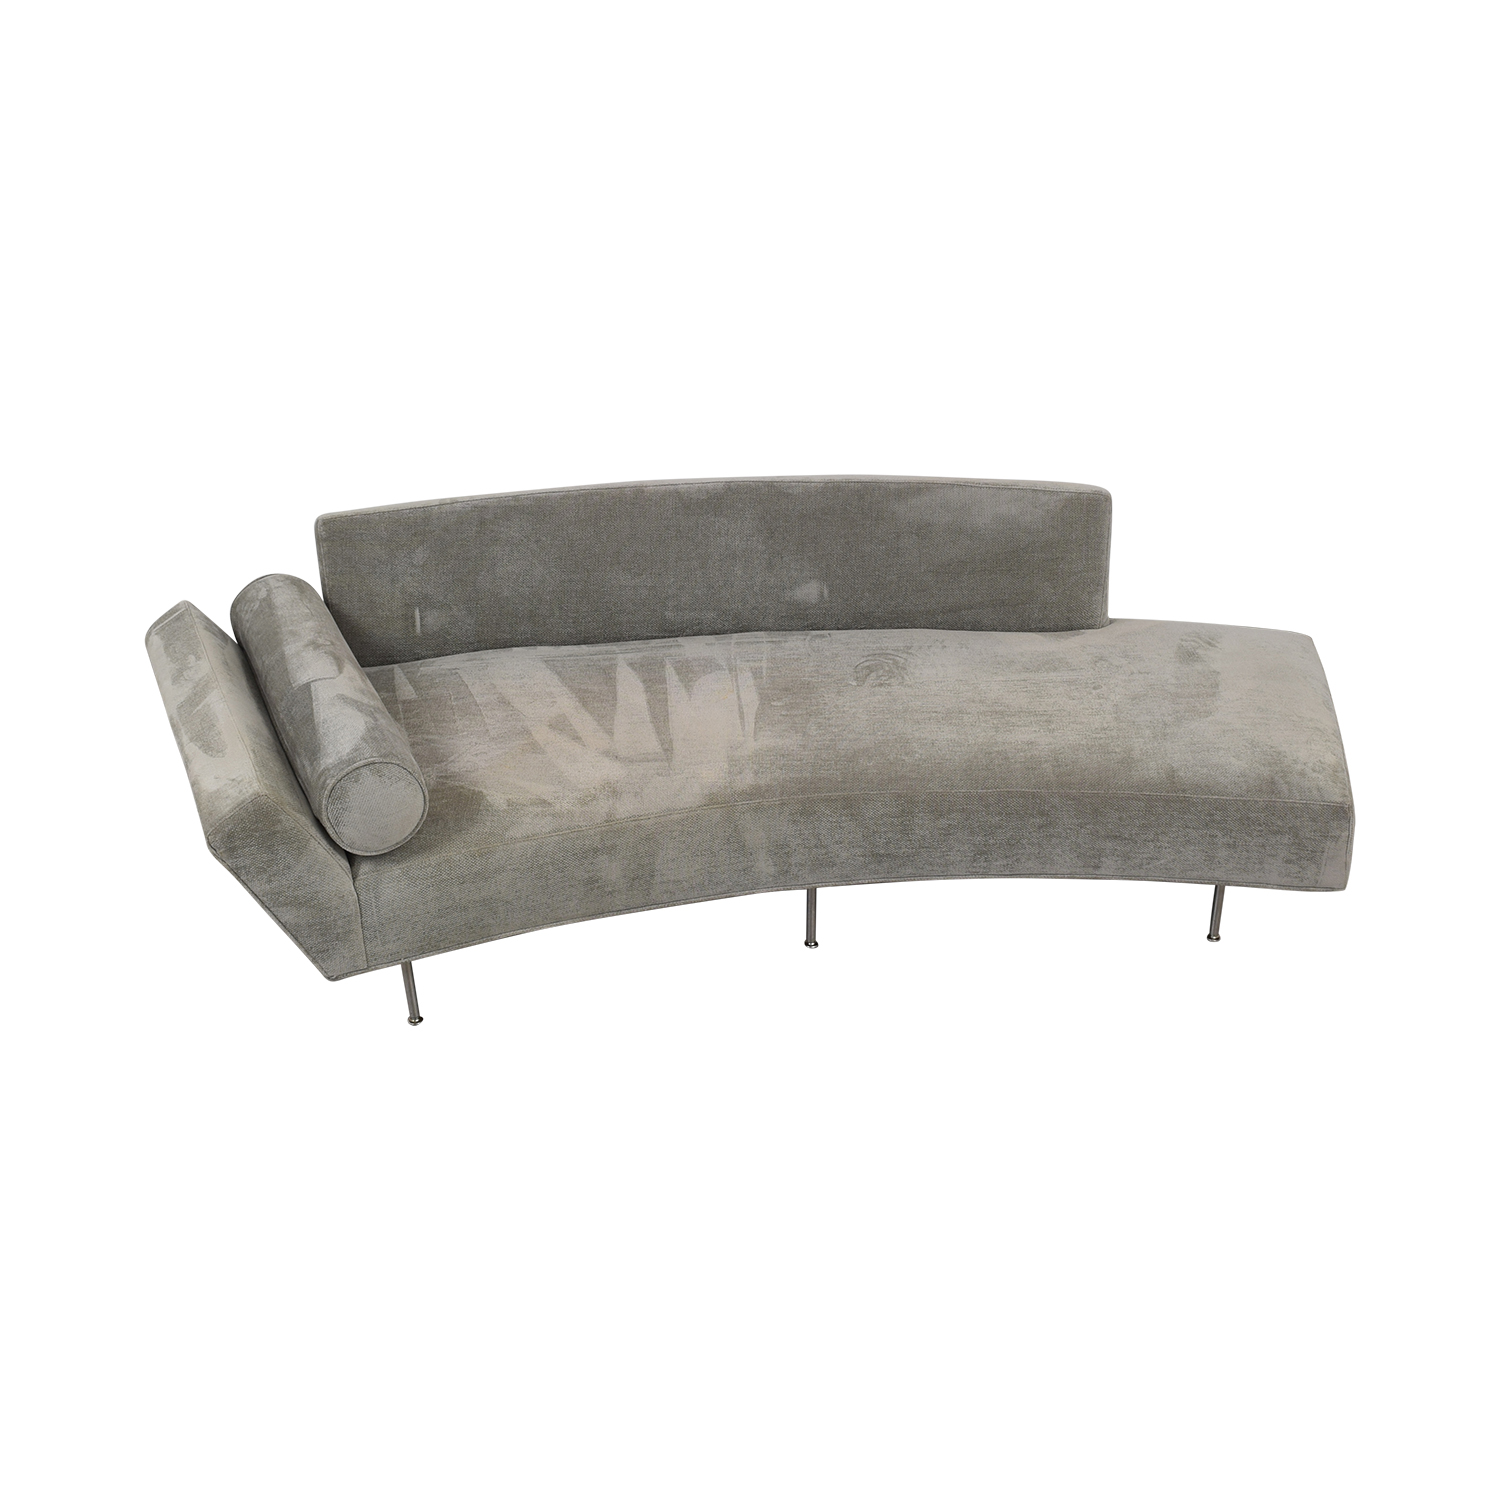 Curved Chaise Lounge dimensions